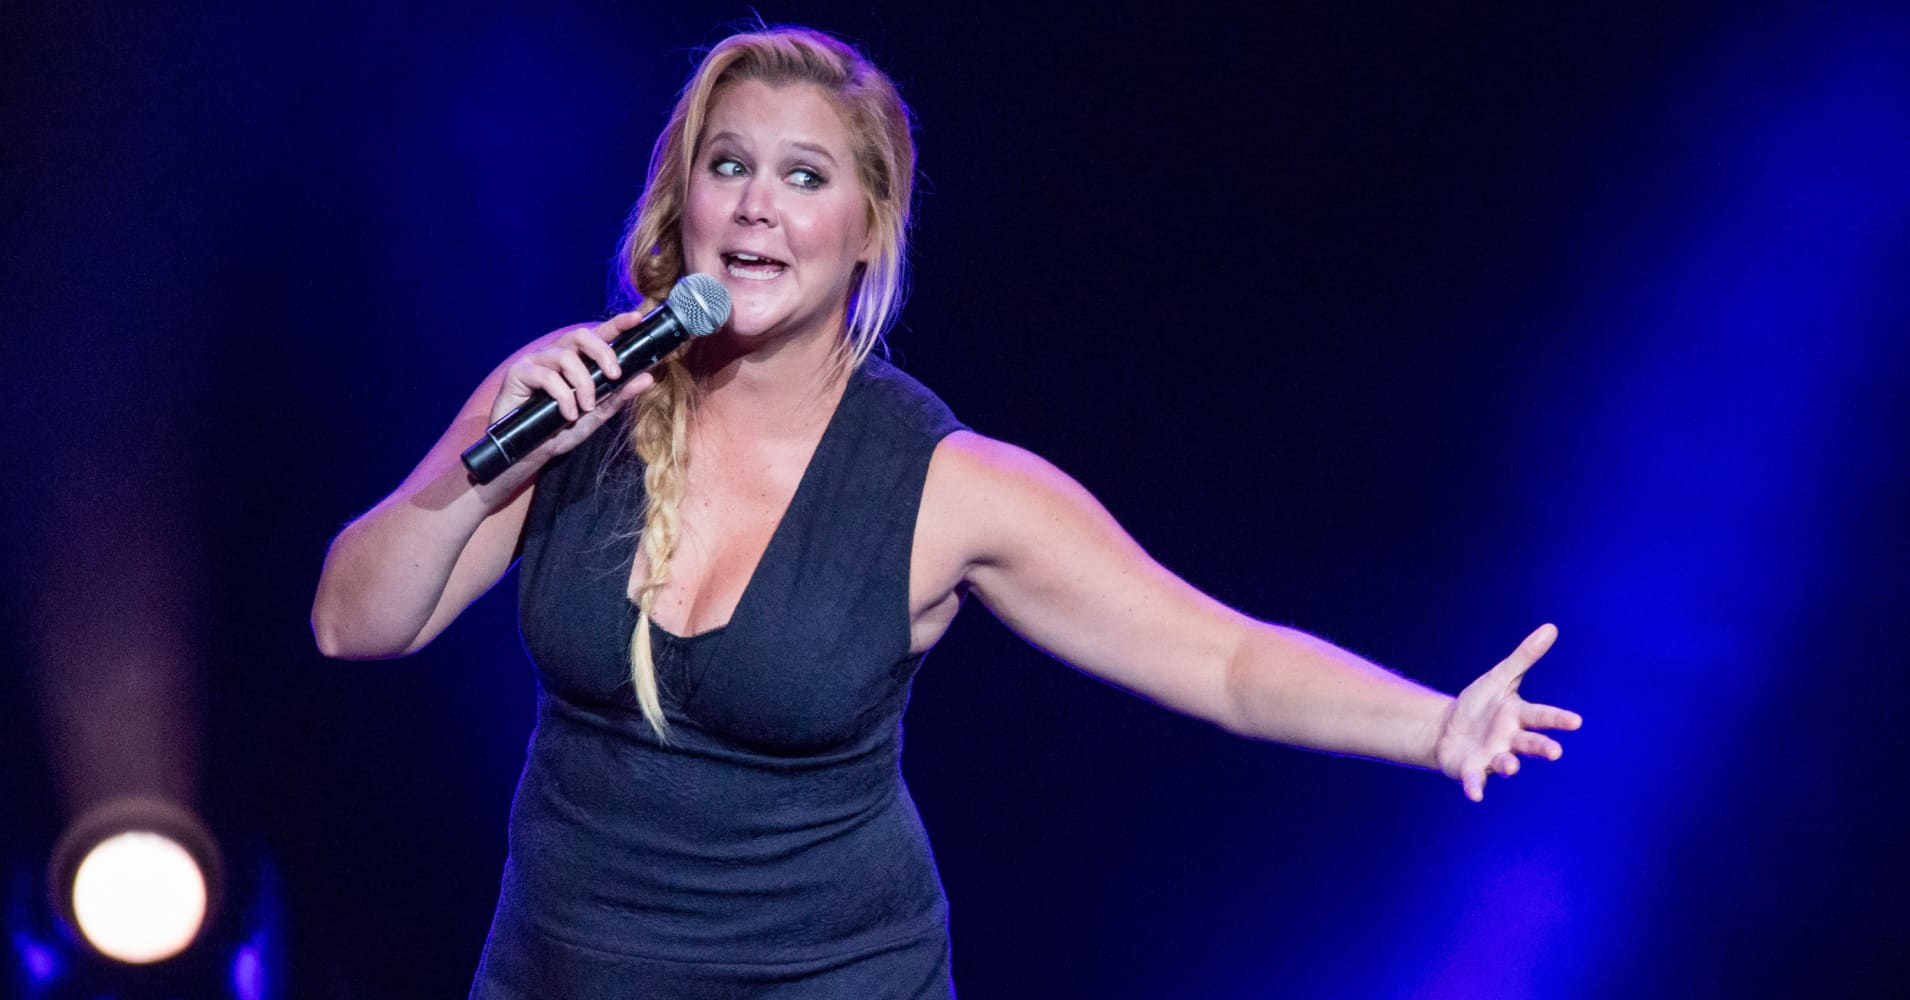 Amy Schumer Clears Up Equal Pay Row Over Netflix Special